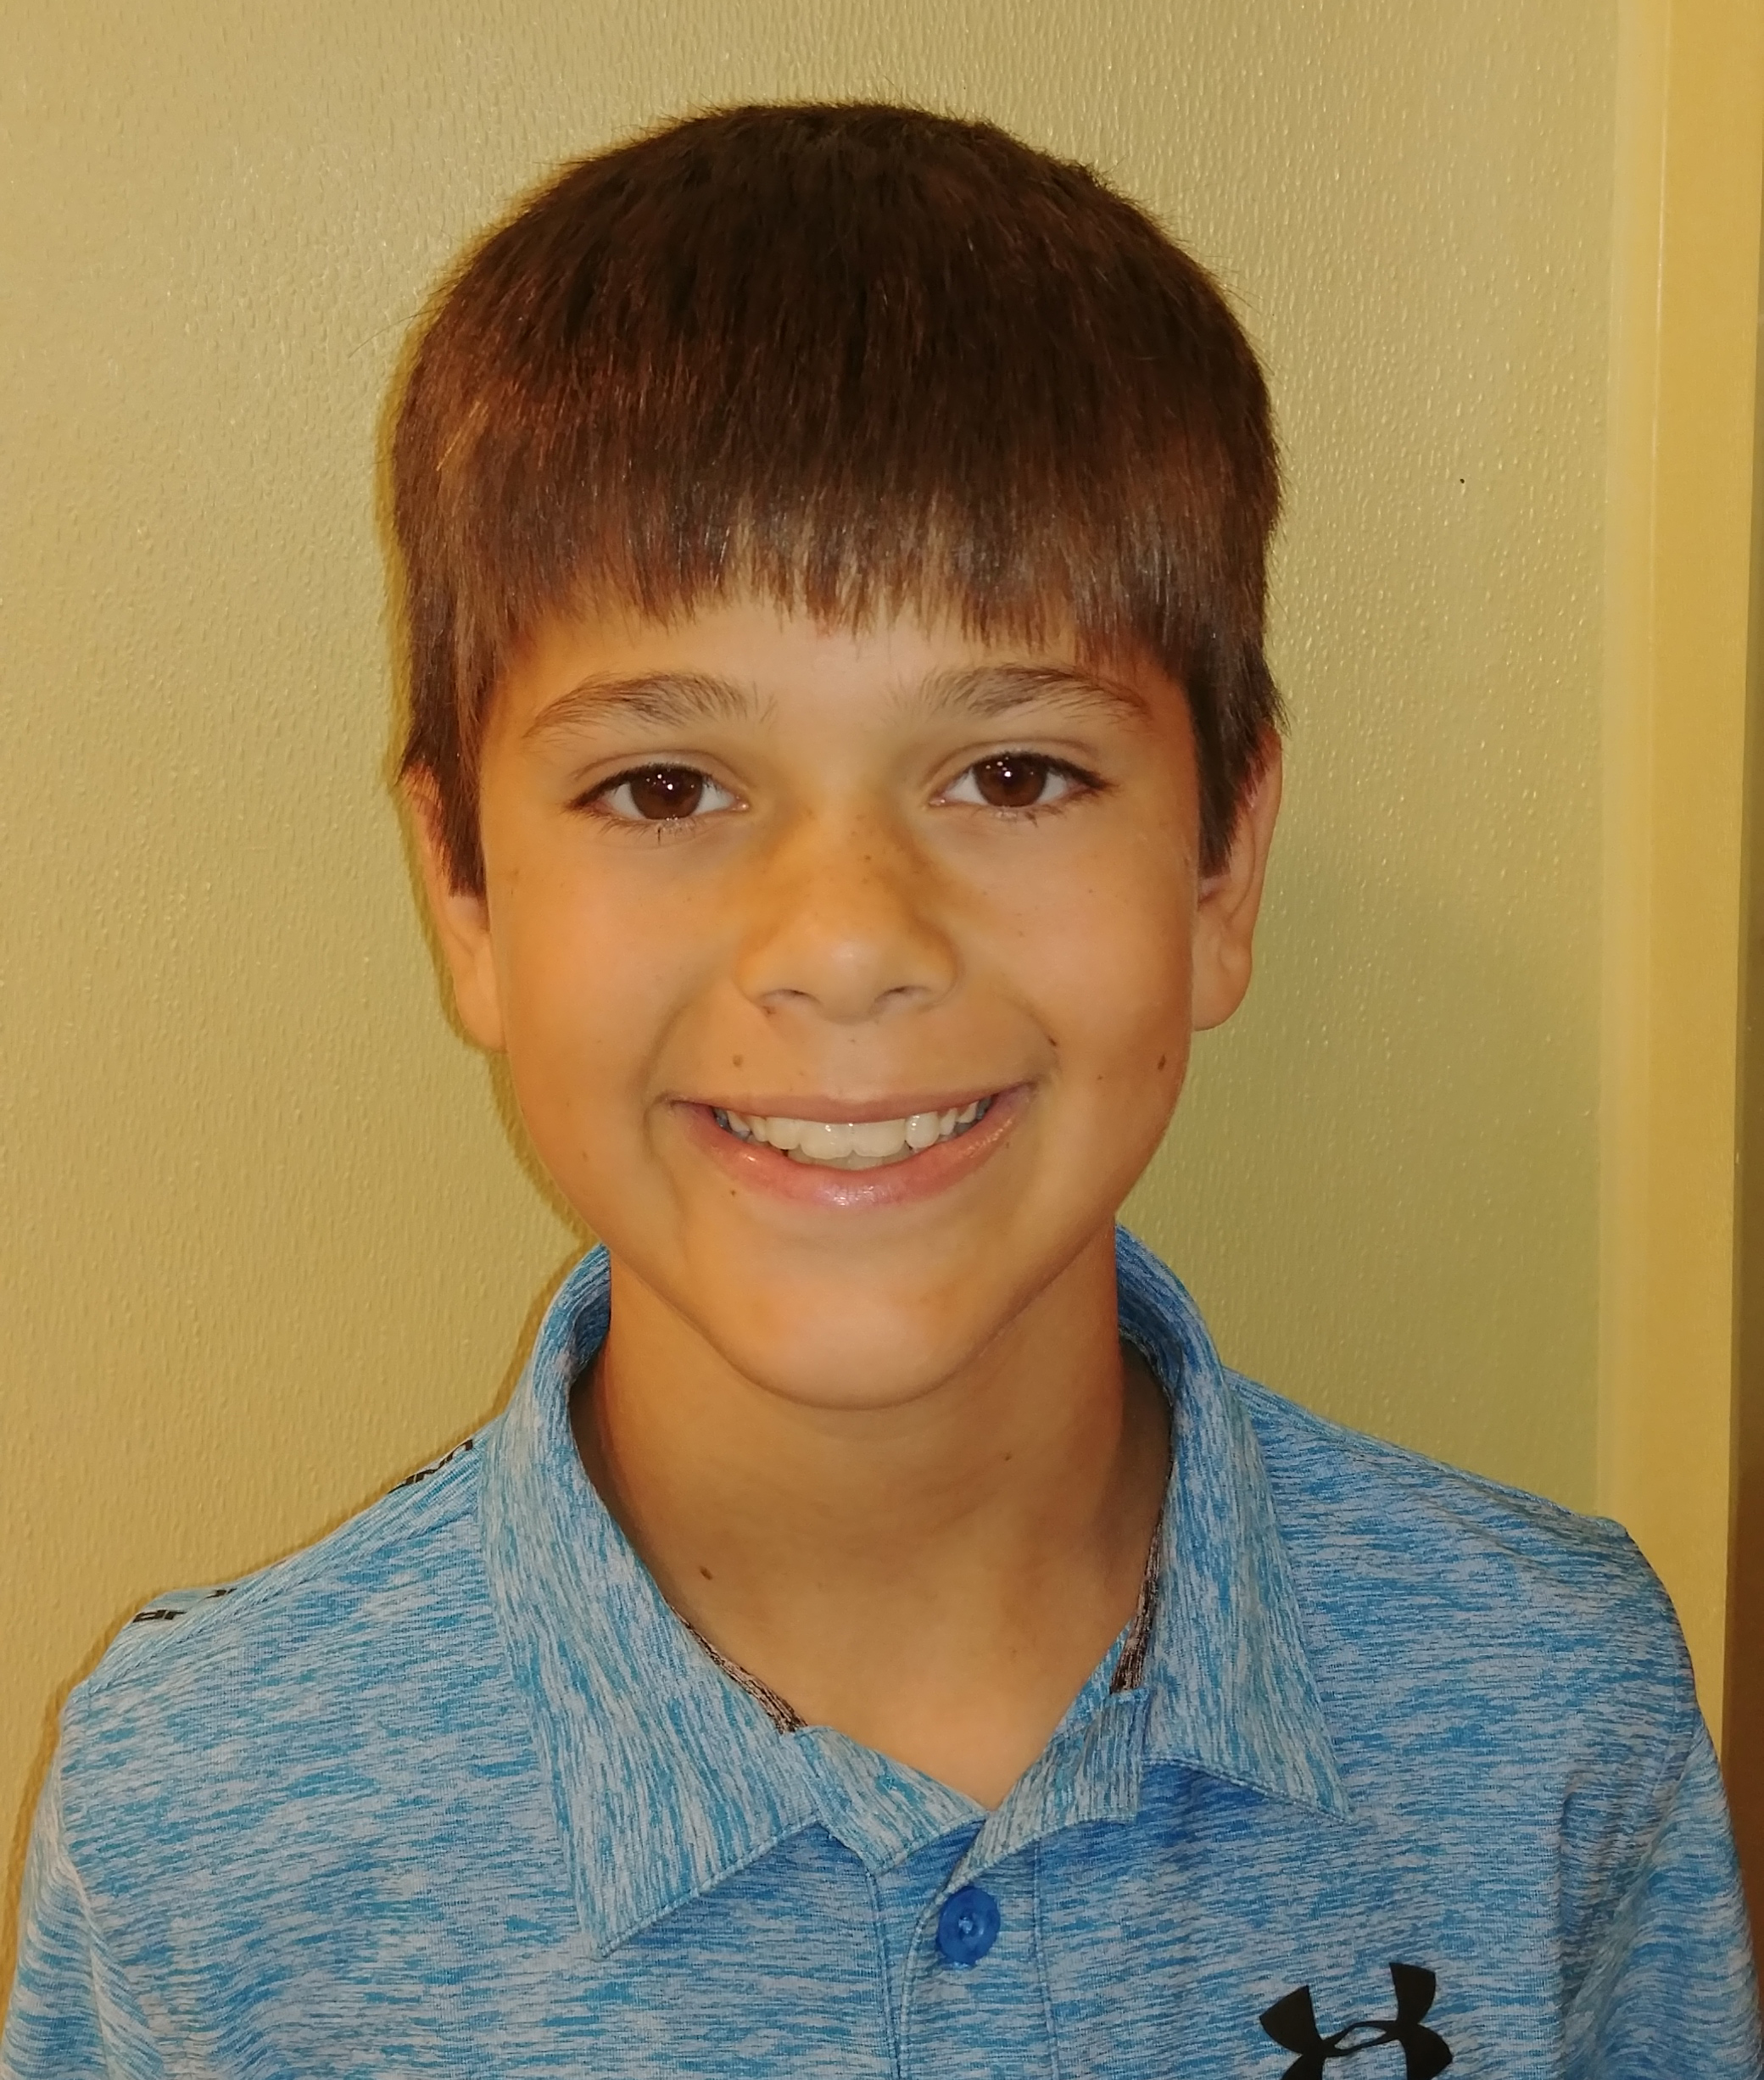 A pro soccer player because it is fun and I like soccer.  Thomas  Age 10